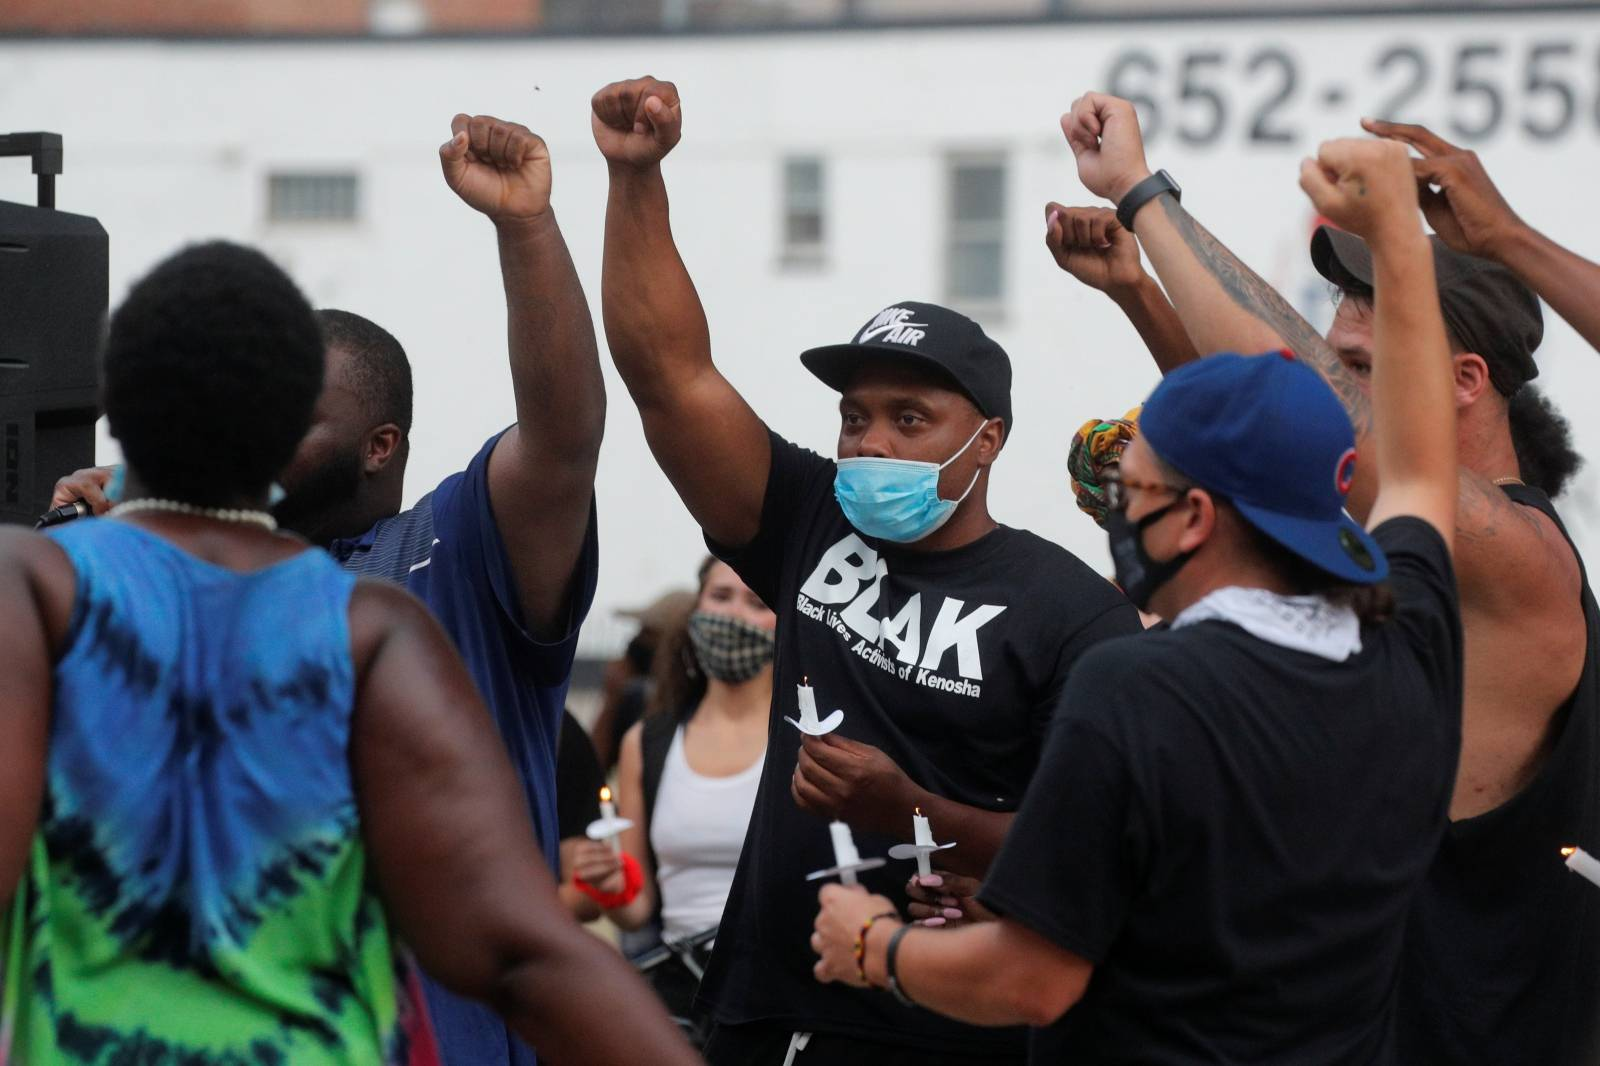 People react while gathering for a vigil, following the police shooting of Jacob Blake, a Black man, in Kenosha, Wisconsin